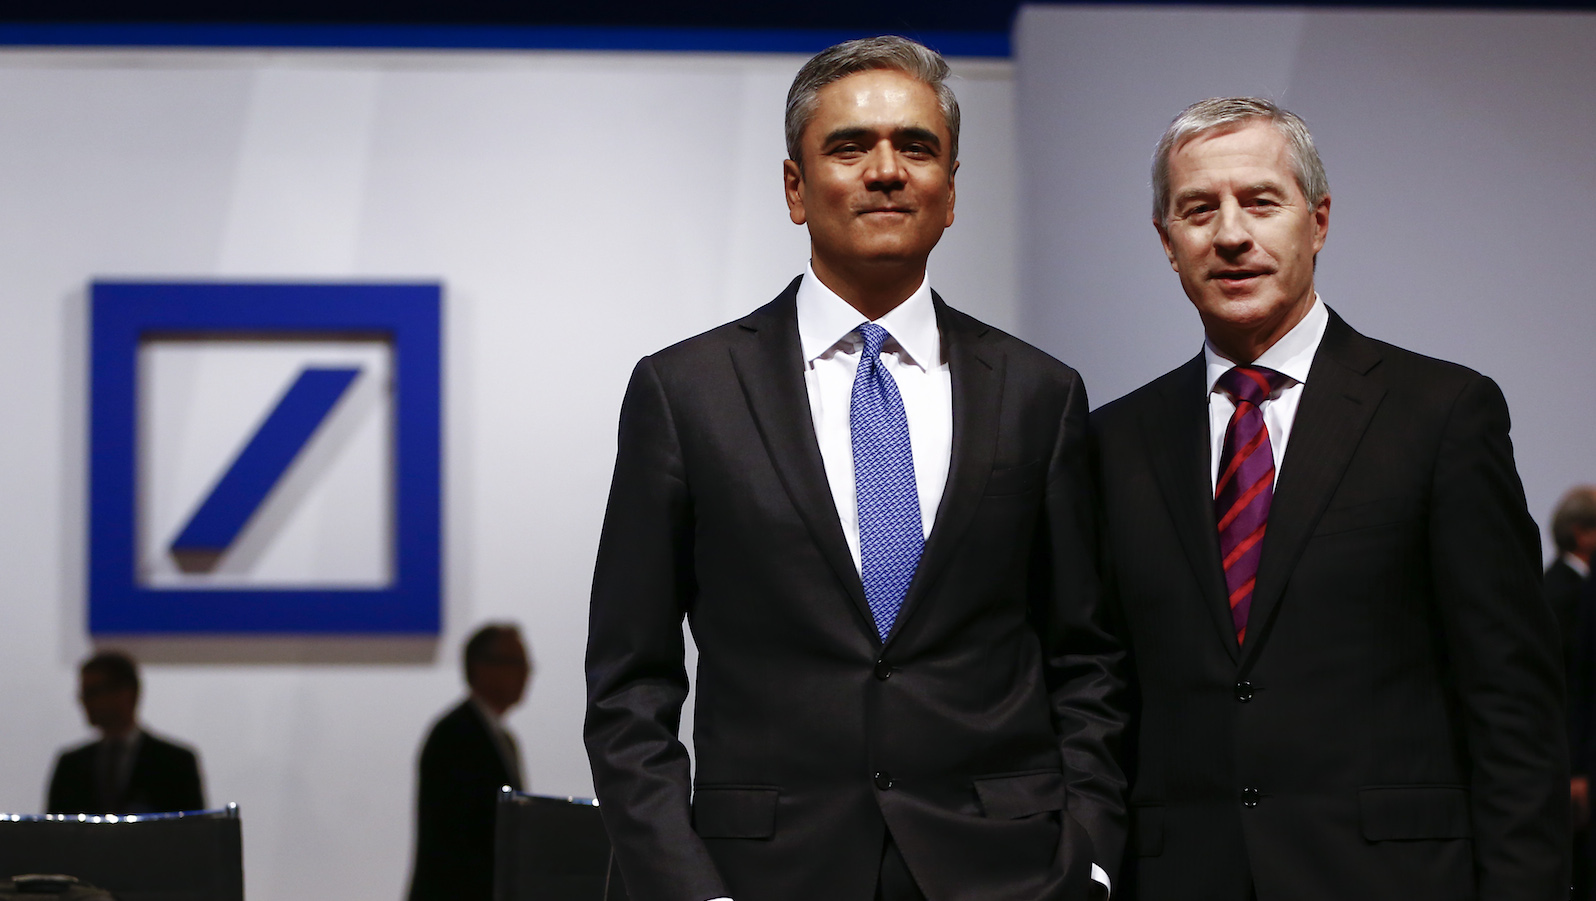 Anshu Jain (L) and Juergen Fitschen, co-CEOs of Deutsche Bank, pose before the bank's annual general meeting in Frankfurt, Germany, May 21, 2015. Deutsche Bank reshuffled its management board late on Wednesday, consolidating restructuring authority under co-Chief Executive Anshu Jain while bidding farewell to its retail banking head Rainer Neske. The reshuffle comes one day before the German bank holds what promises to be a stormy annual general meeting after shareholders openly expressed dismay at lagging profits, soaring fines and sluggish reforms.   REUTERS/Kai Pfaffenbach - RTX1DWK8